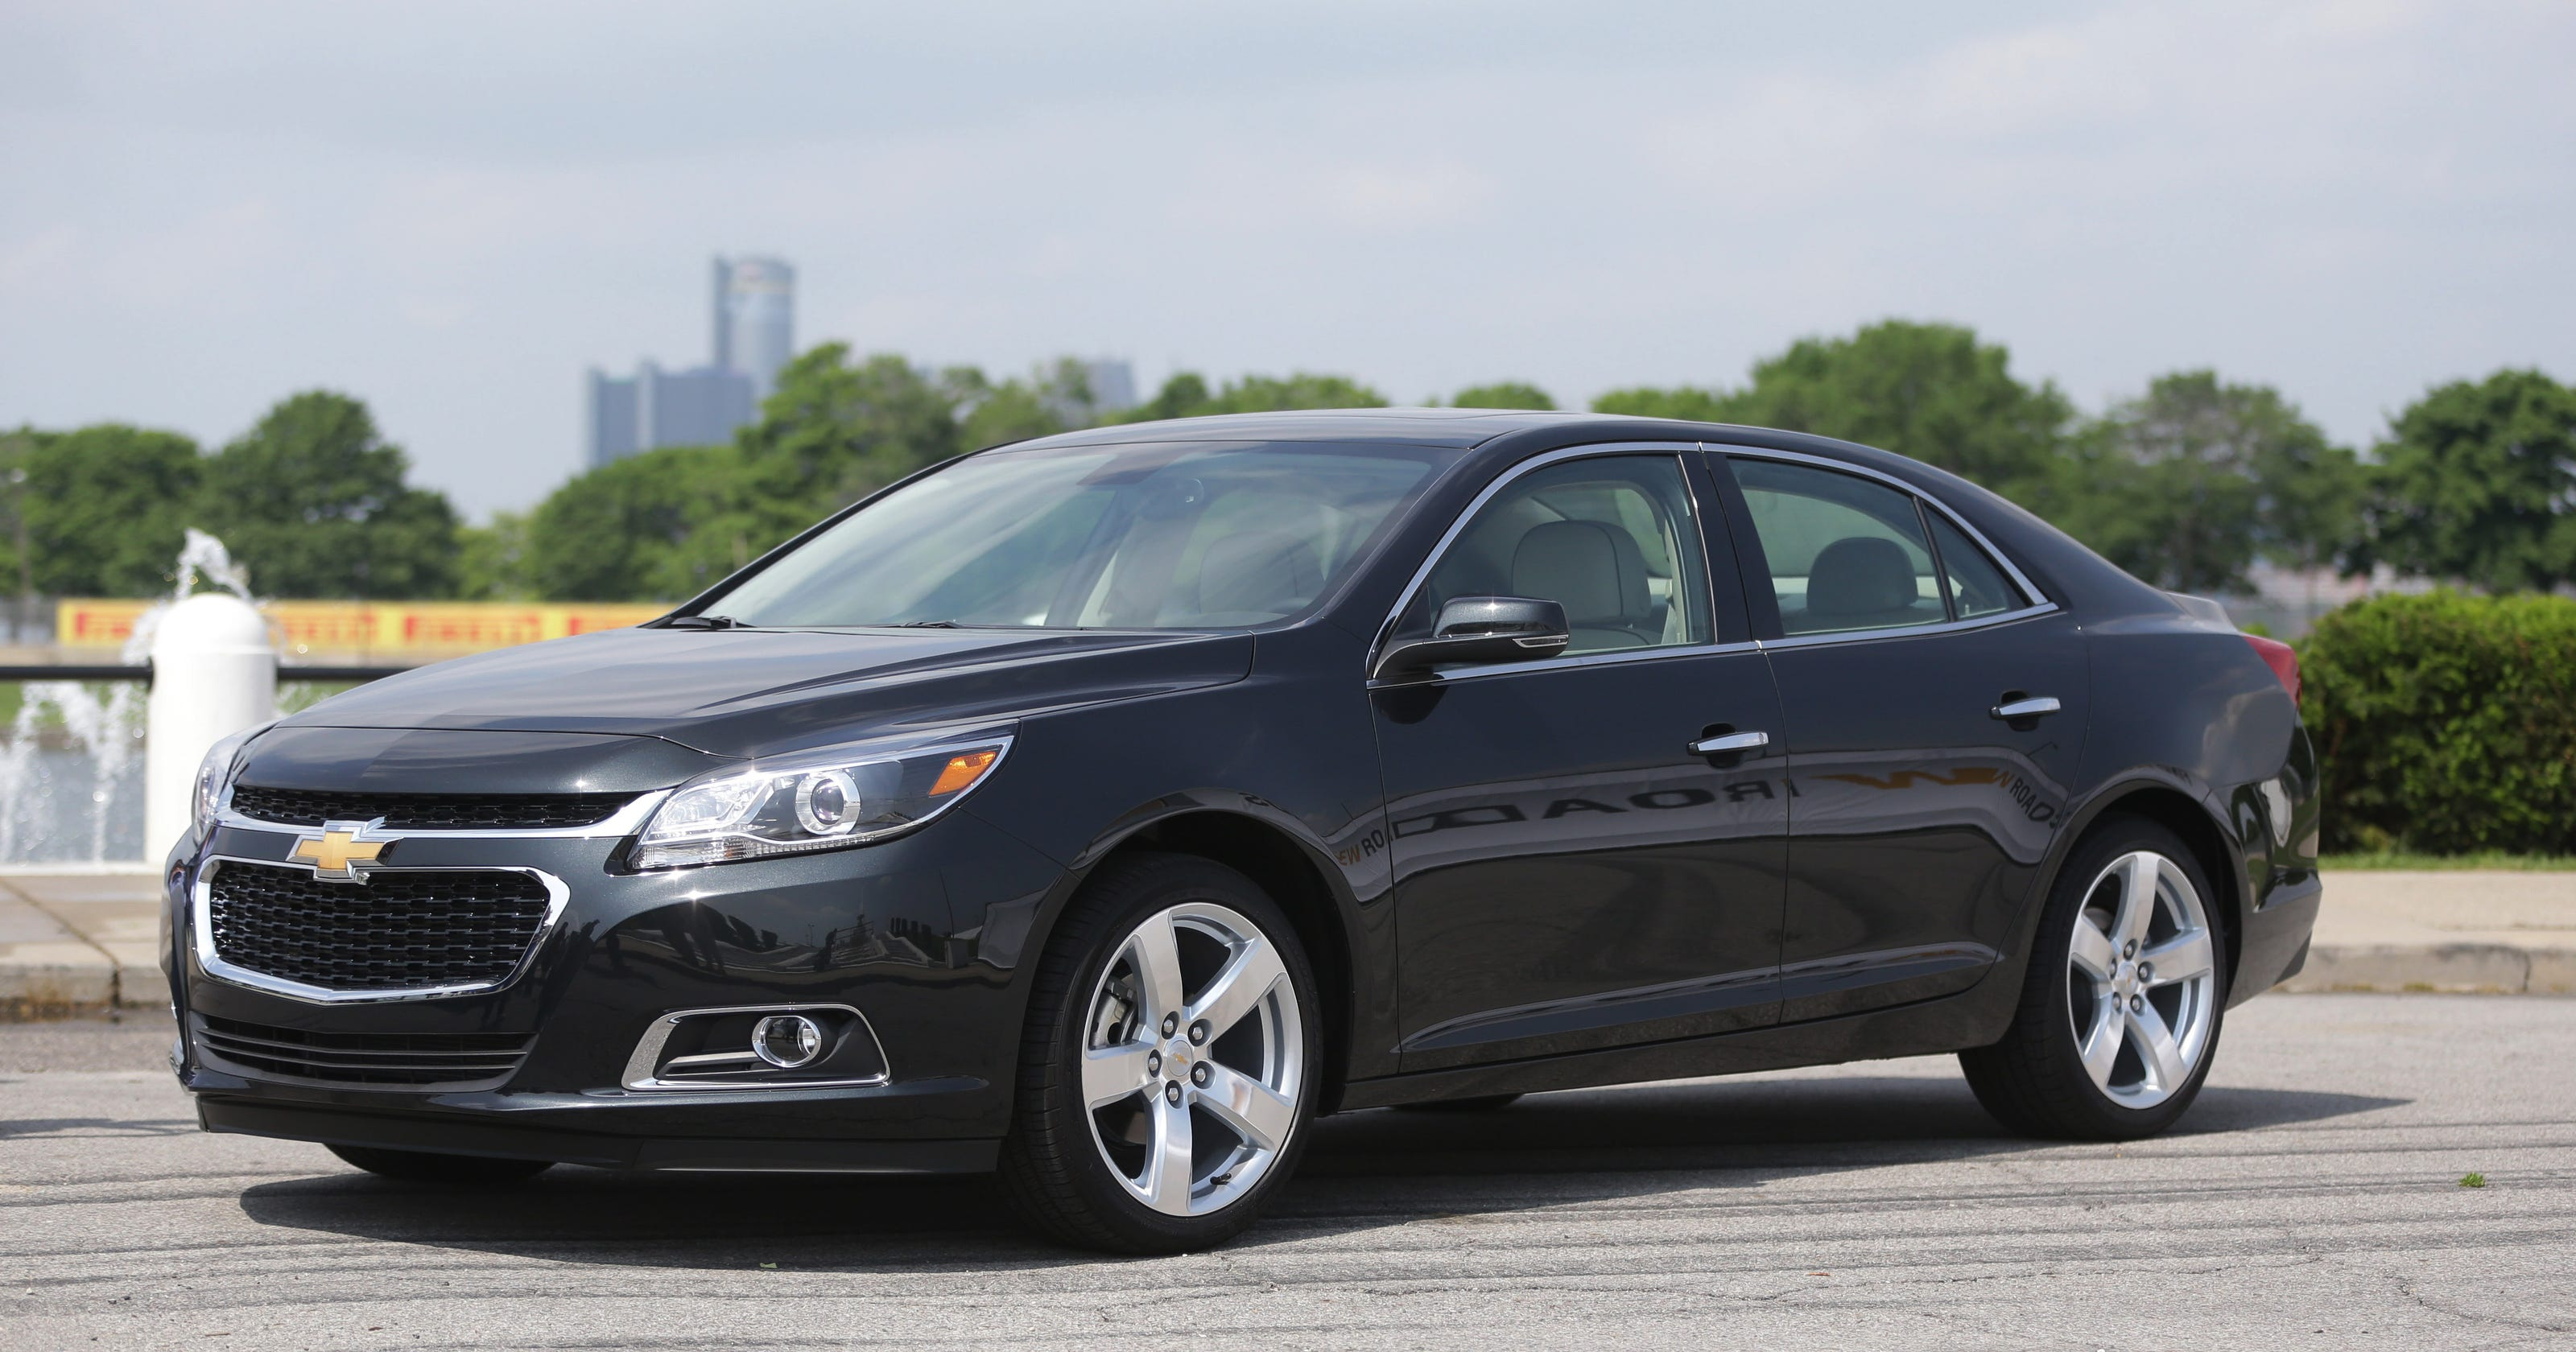 GM recalls Chevy Malibus to fix sunroof control issue